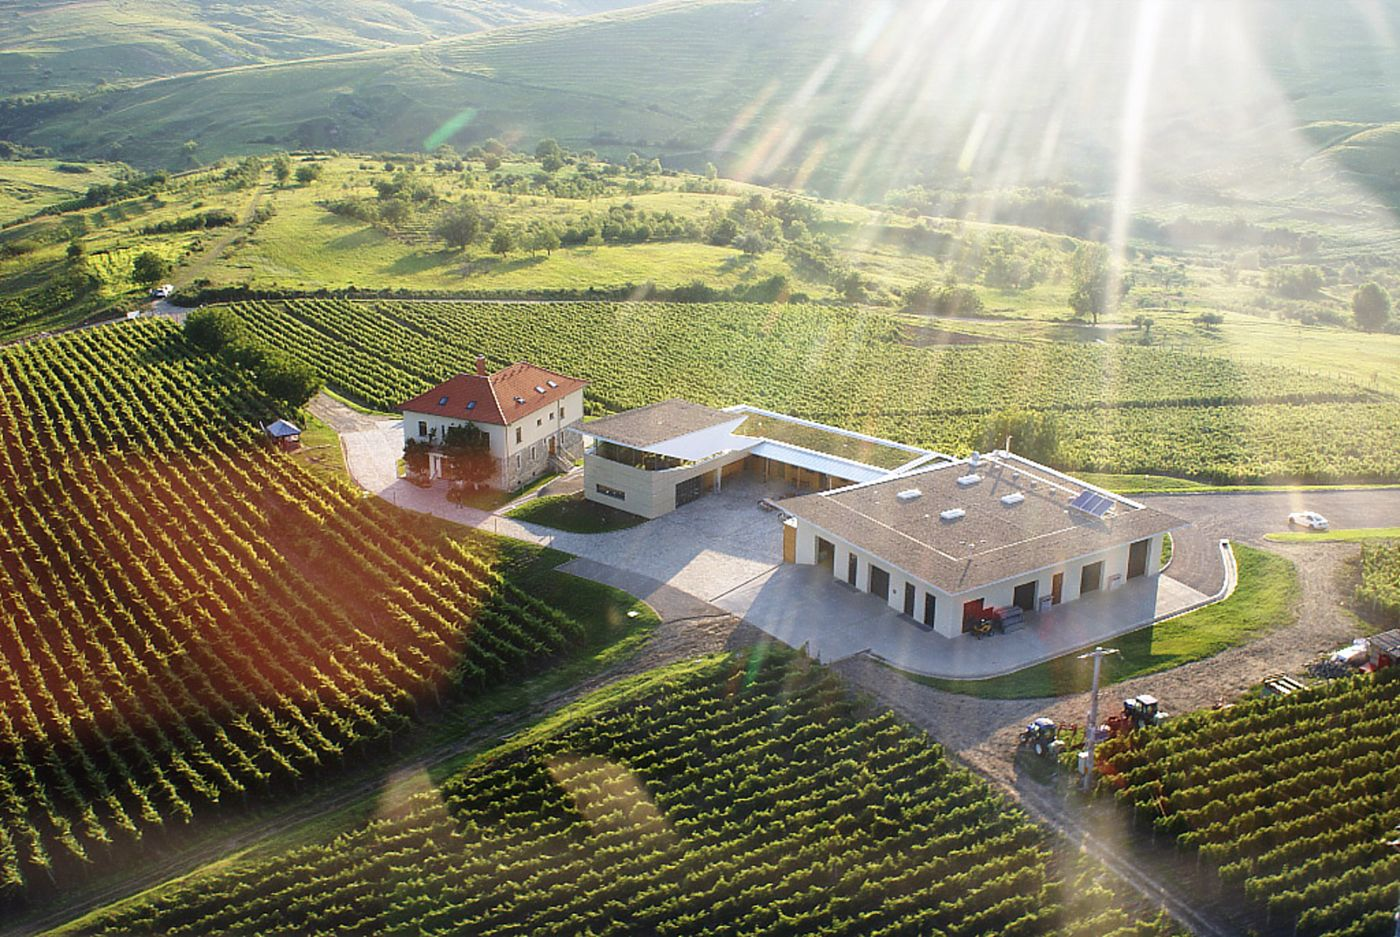 Photo: aerial view of the winery building surrounded by bright green vineyards; in the background, a slightly hilly landscape; sun rays across the whole scenery